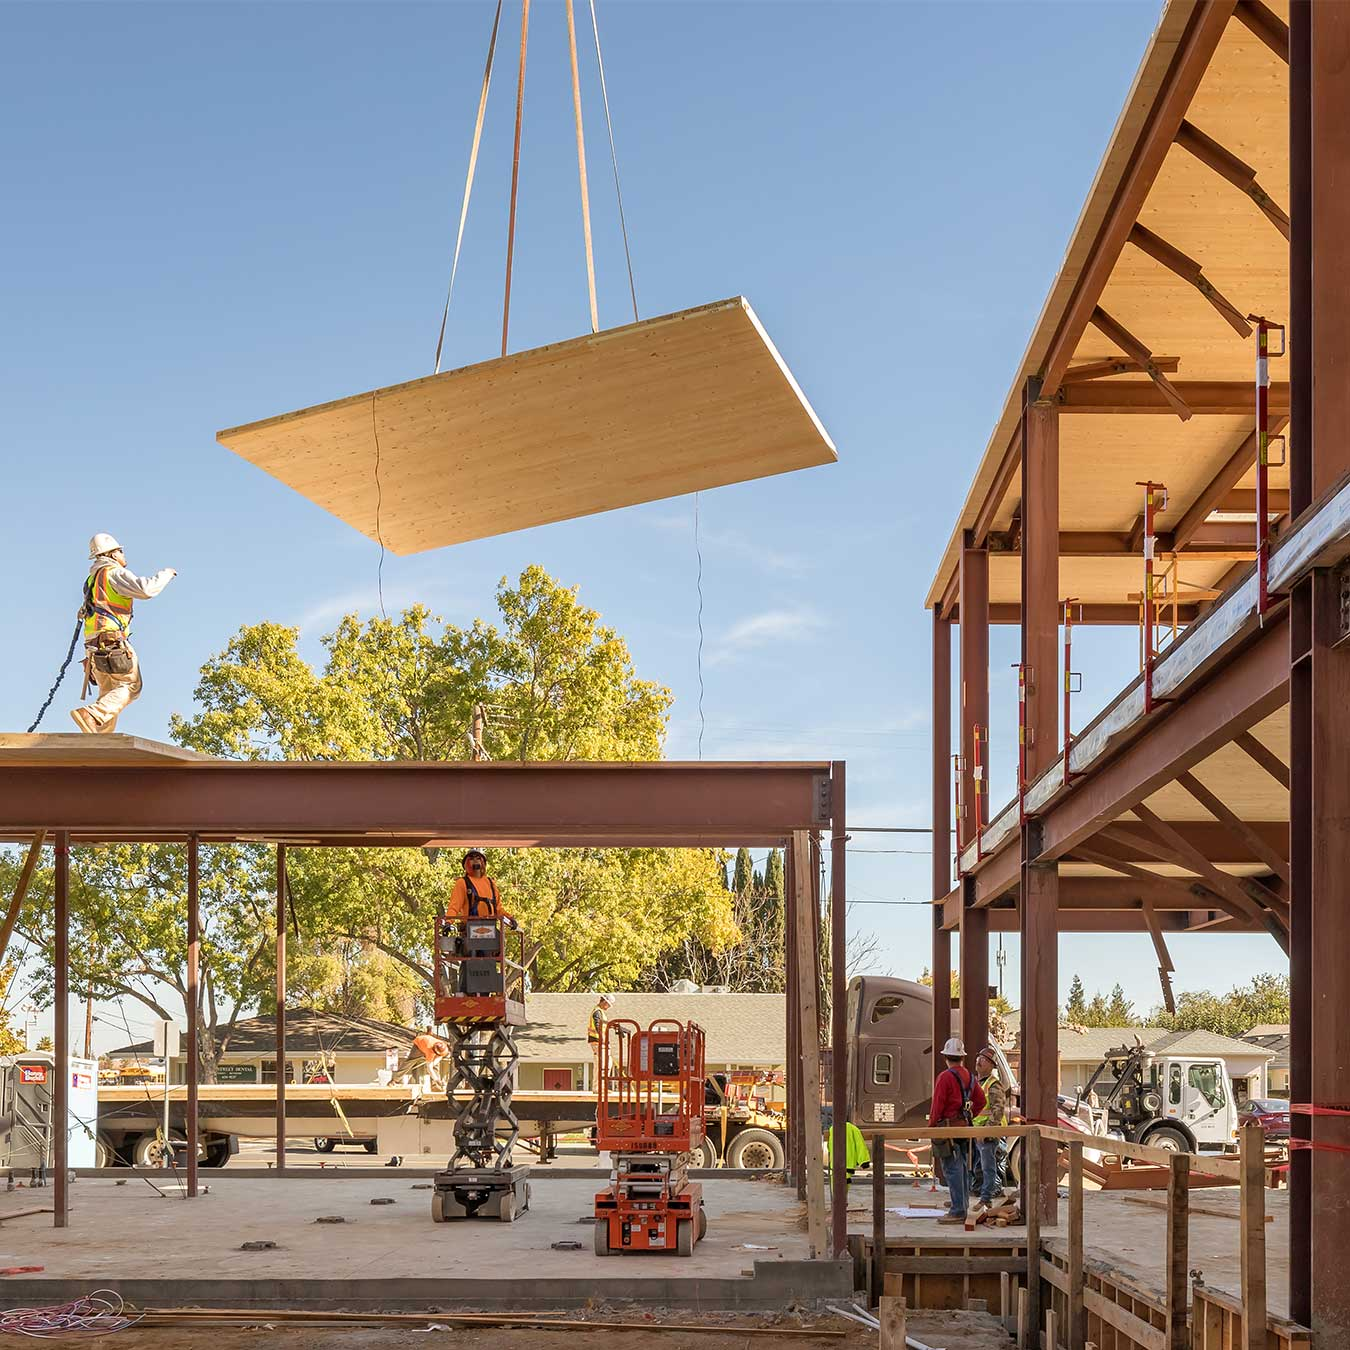 Mass Timber Panel Installation at the Brentwood Public Library in Brentwood, California